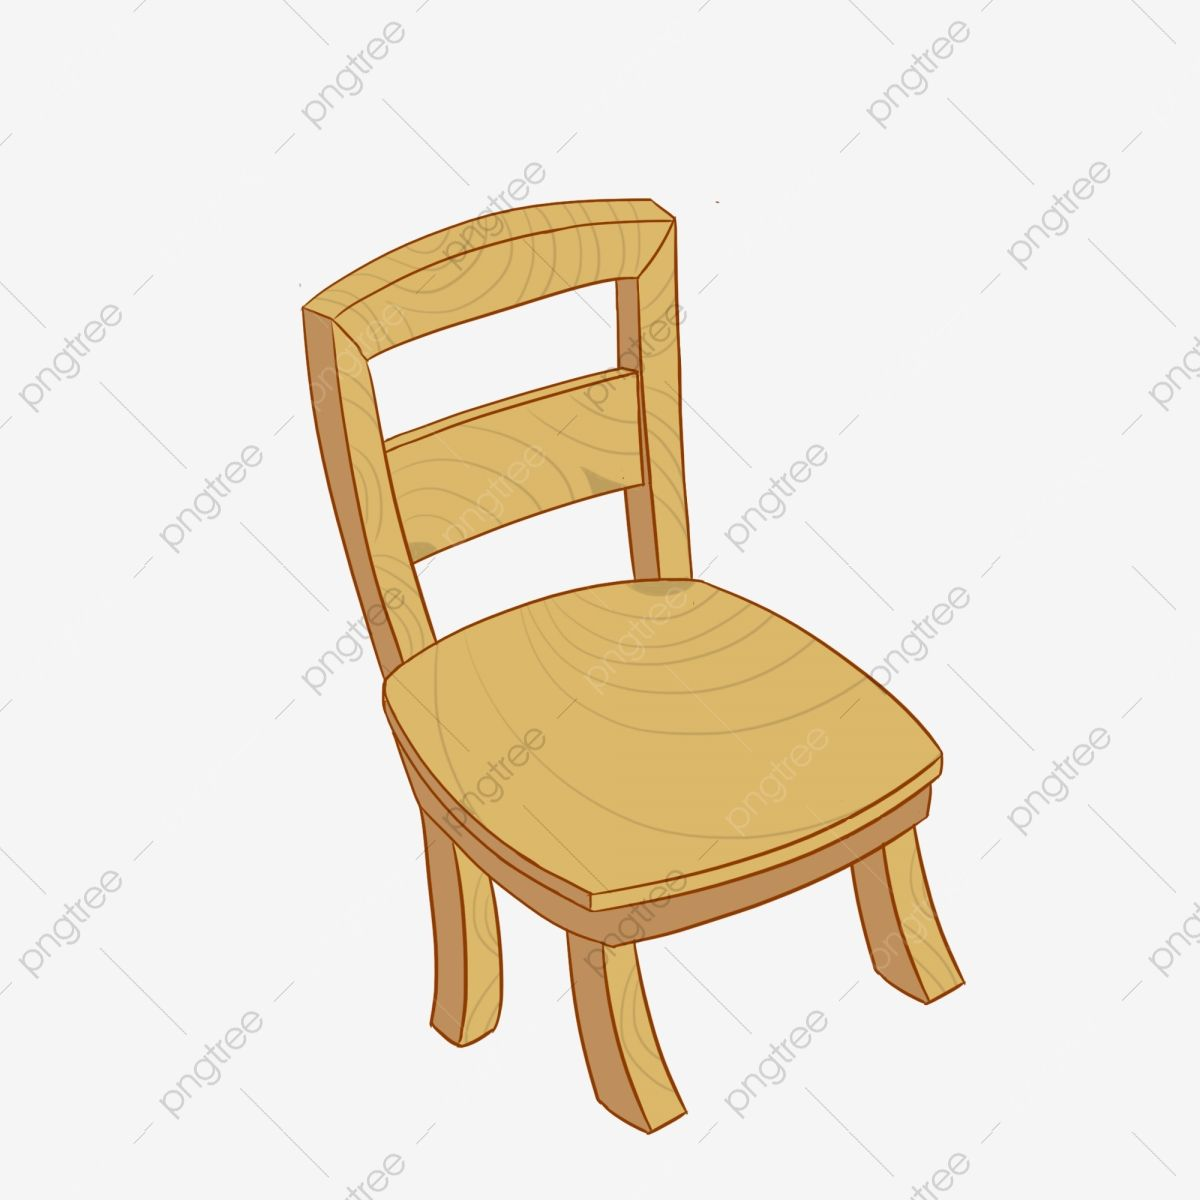 Simple Cartoon Chair Png Element Chairs Tables And Chairs Stools Png Transparent Clipart Image And Psd File For Free Download In 2020 Simple Cartoon Shop Logo Design Chair